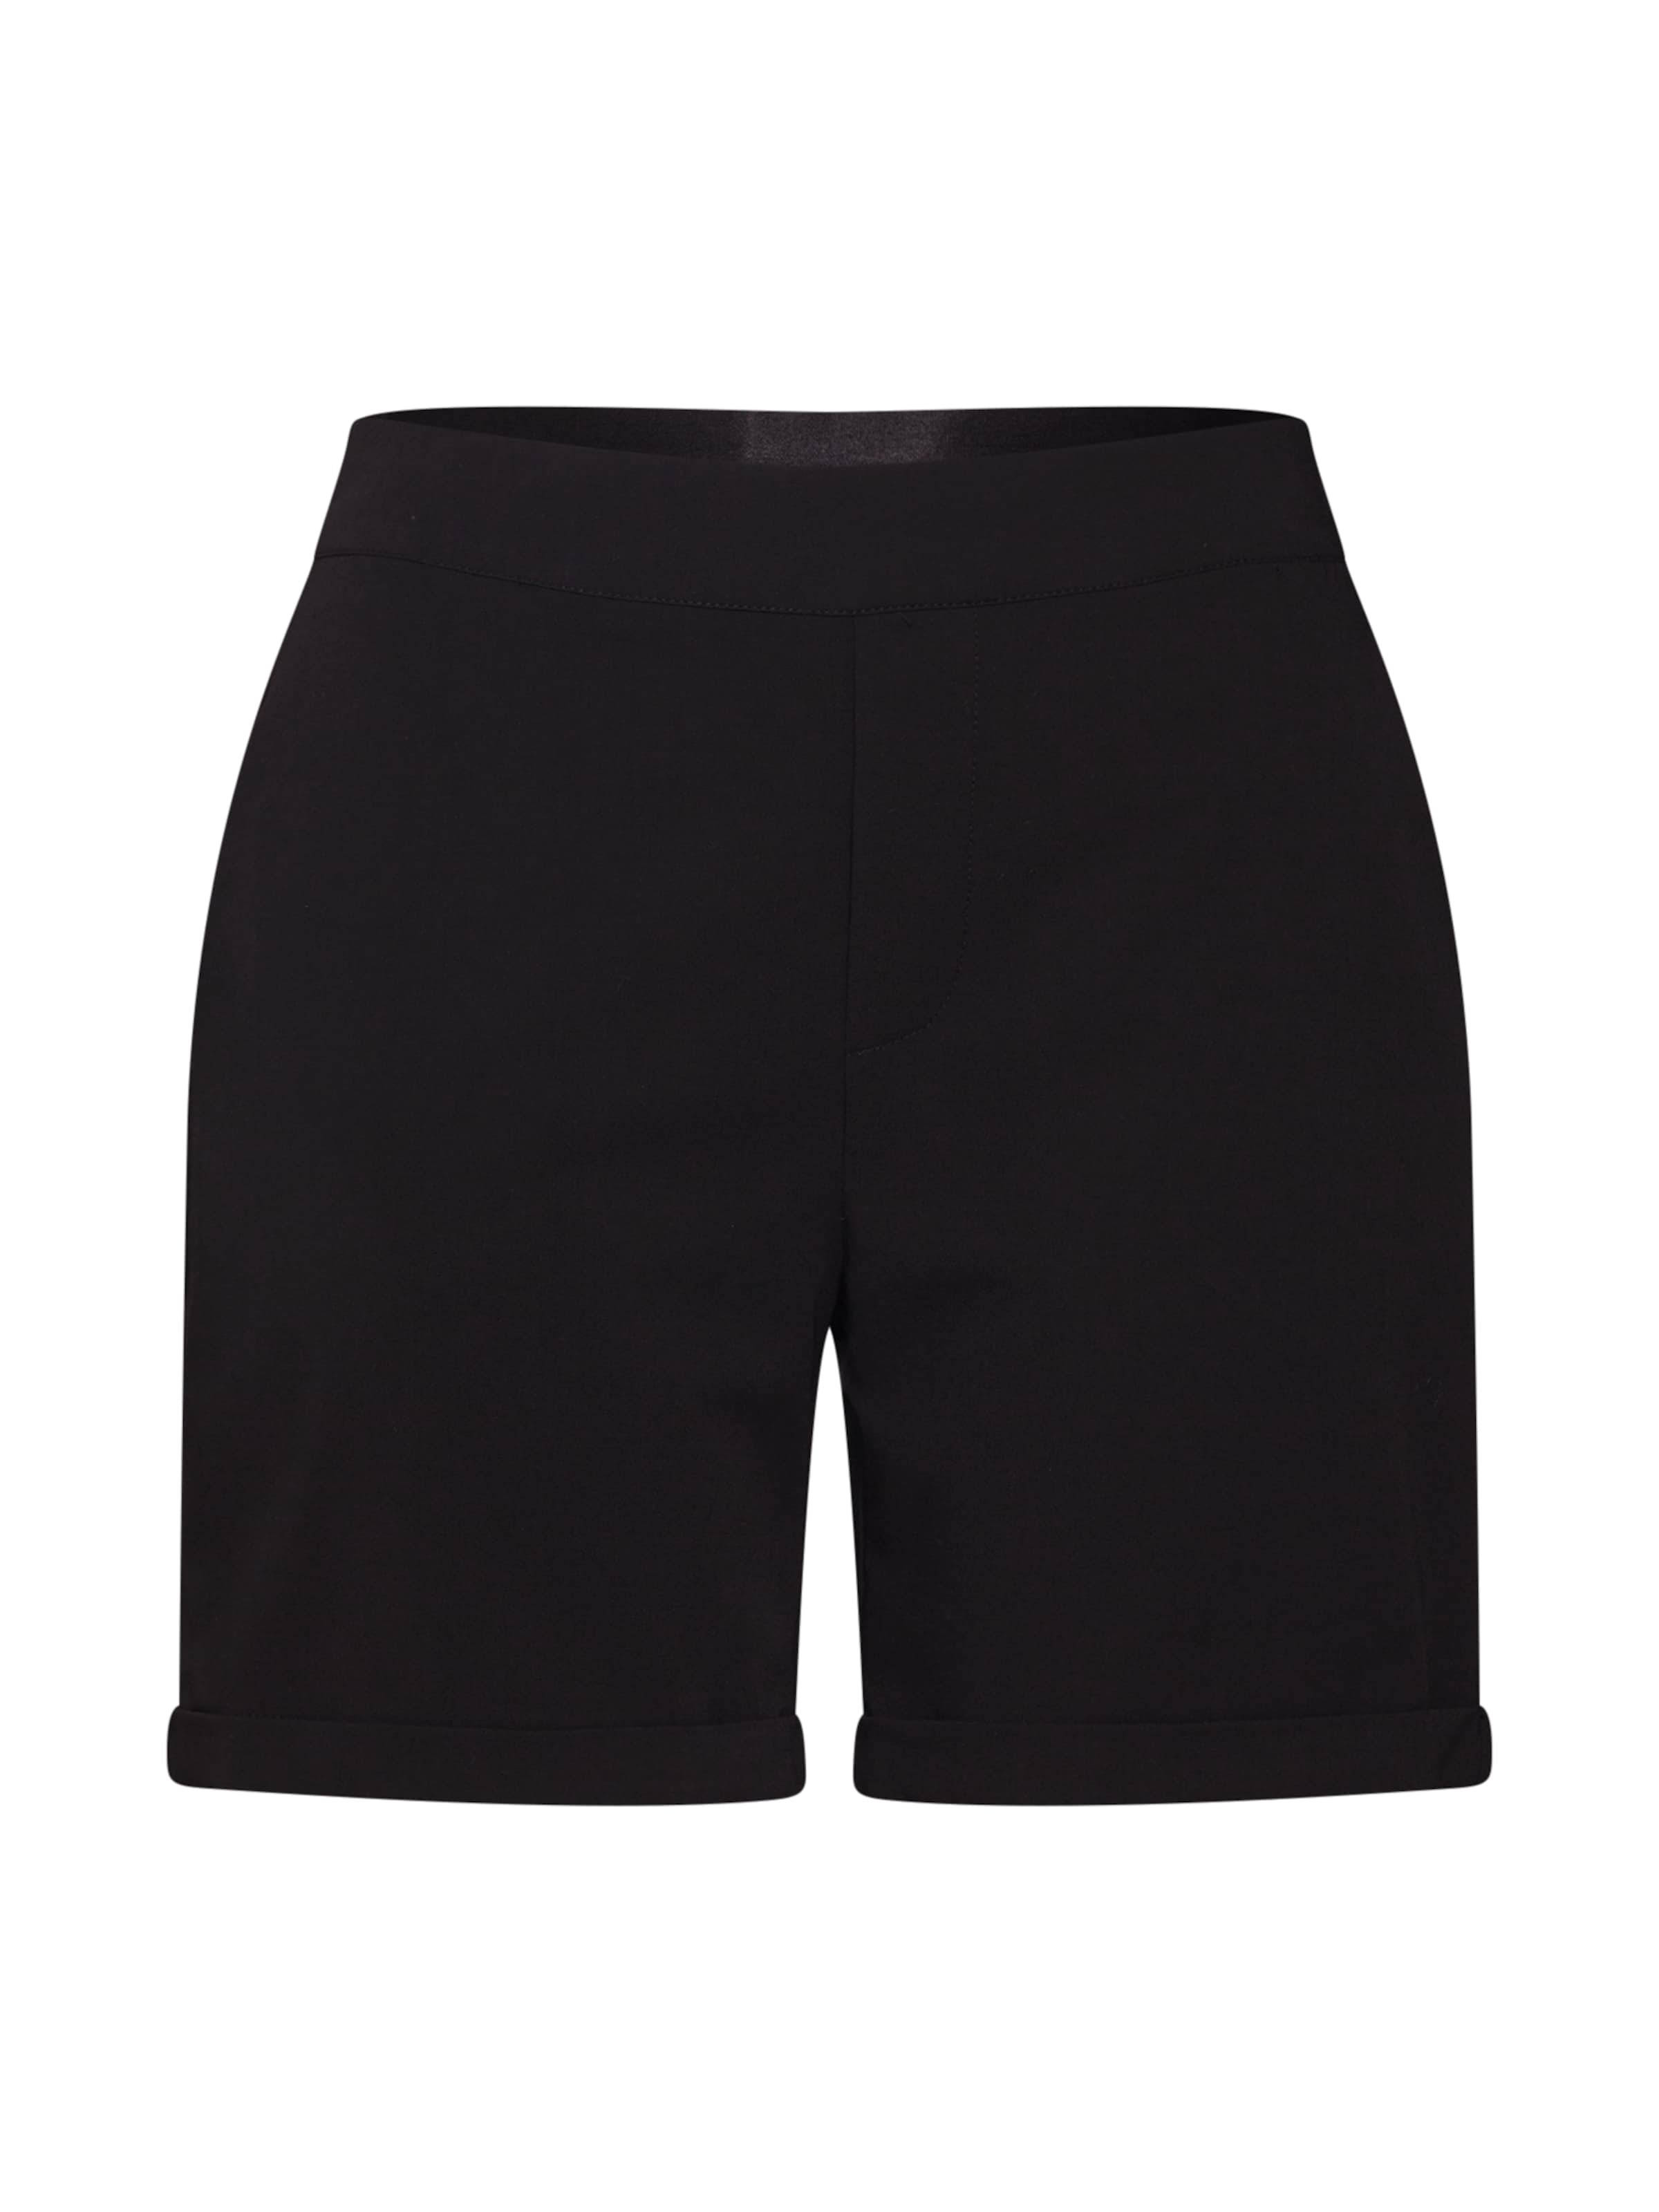 Schwarz In 'cecilie' Object Shorts In Object 'cecilie' Shorts vNw0m8n